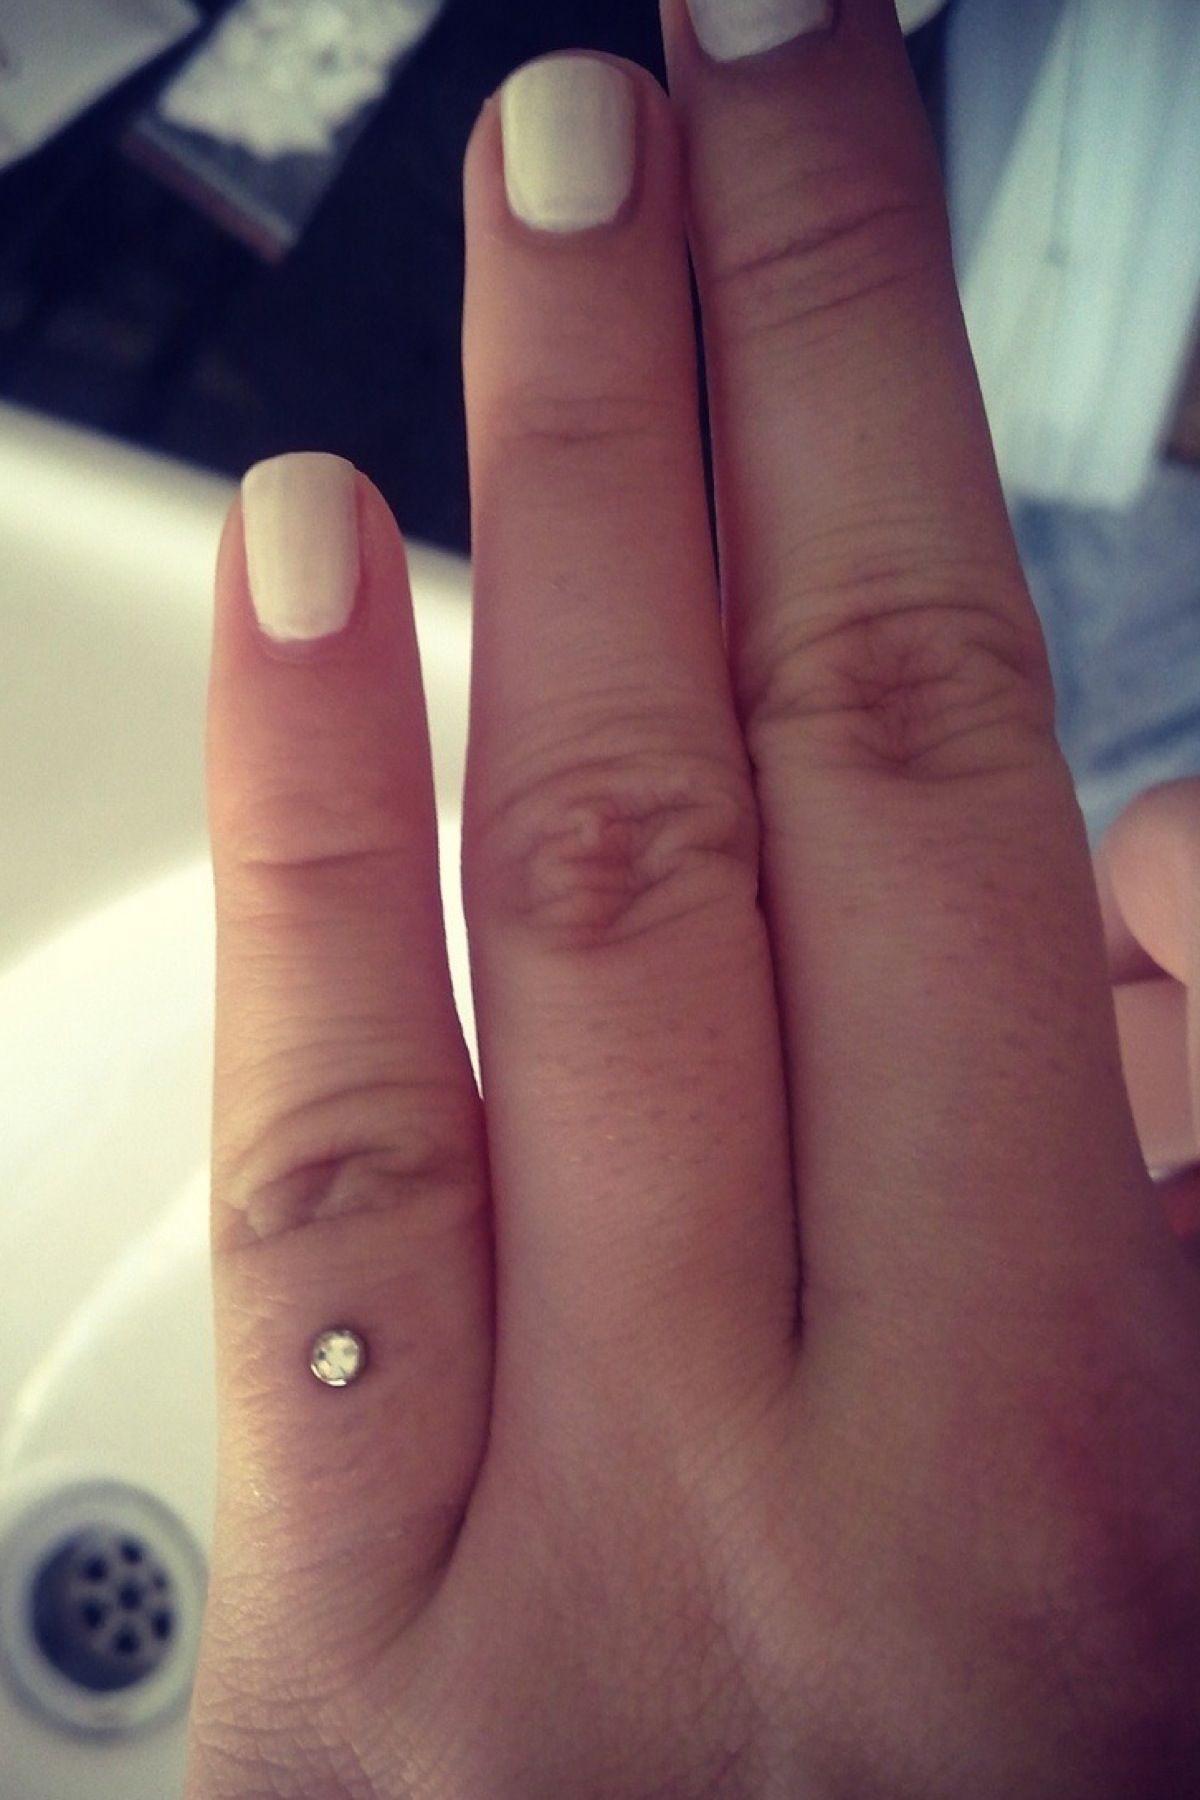 Pinky Finger Dermal Piercing This Is Actually Really Cute I Would